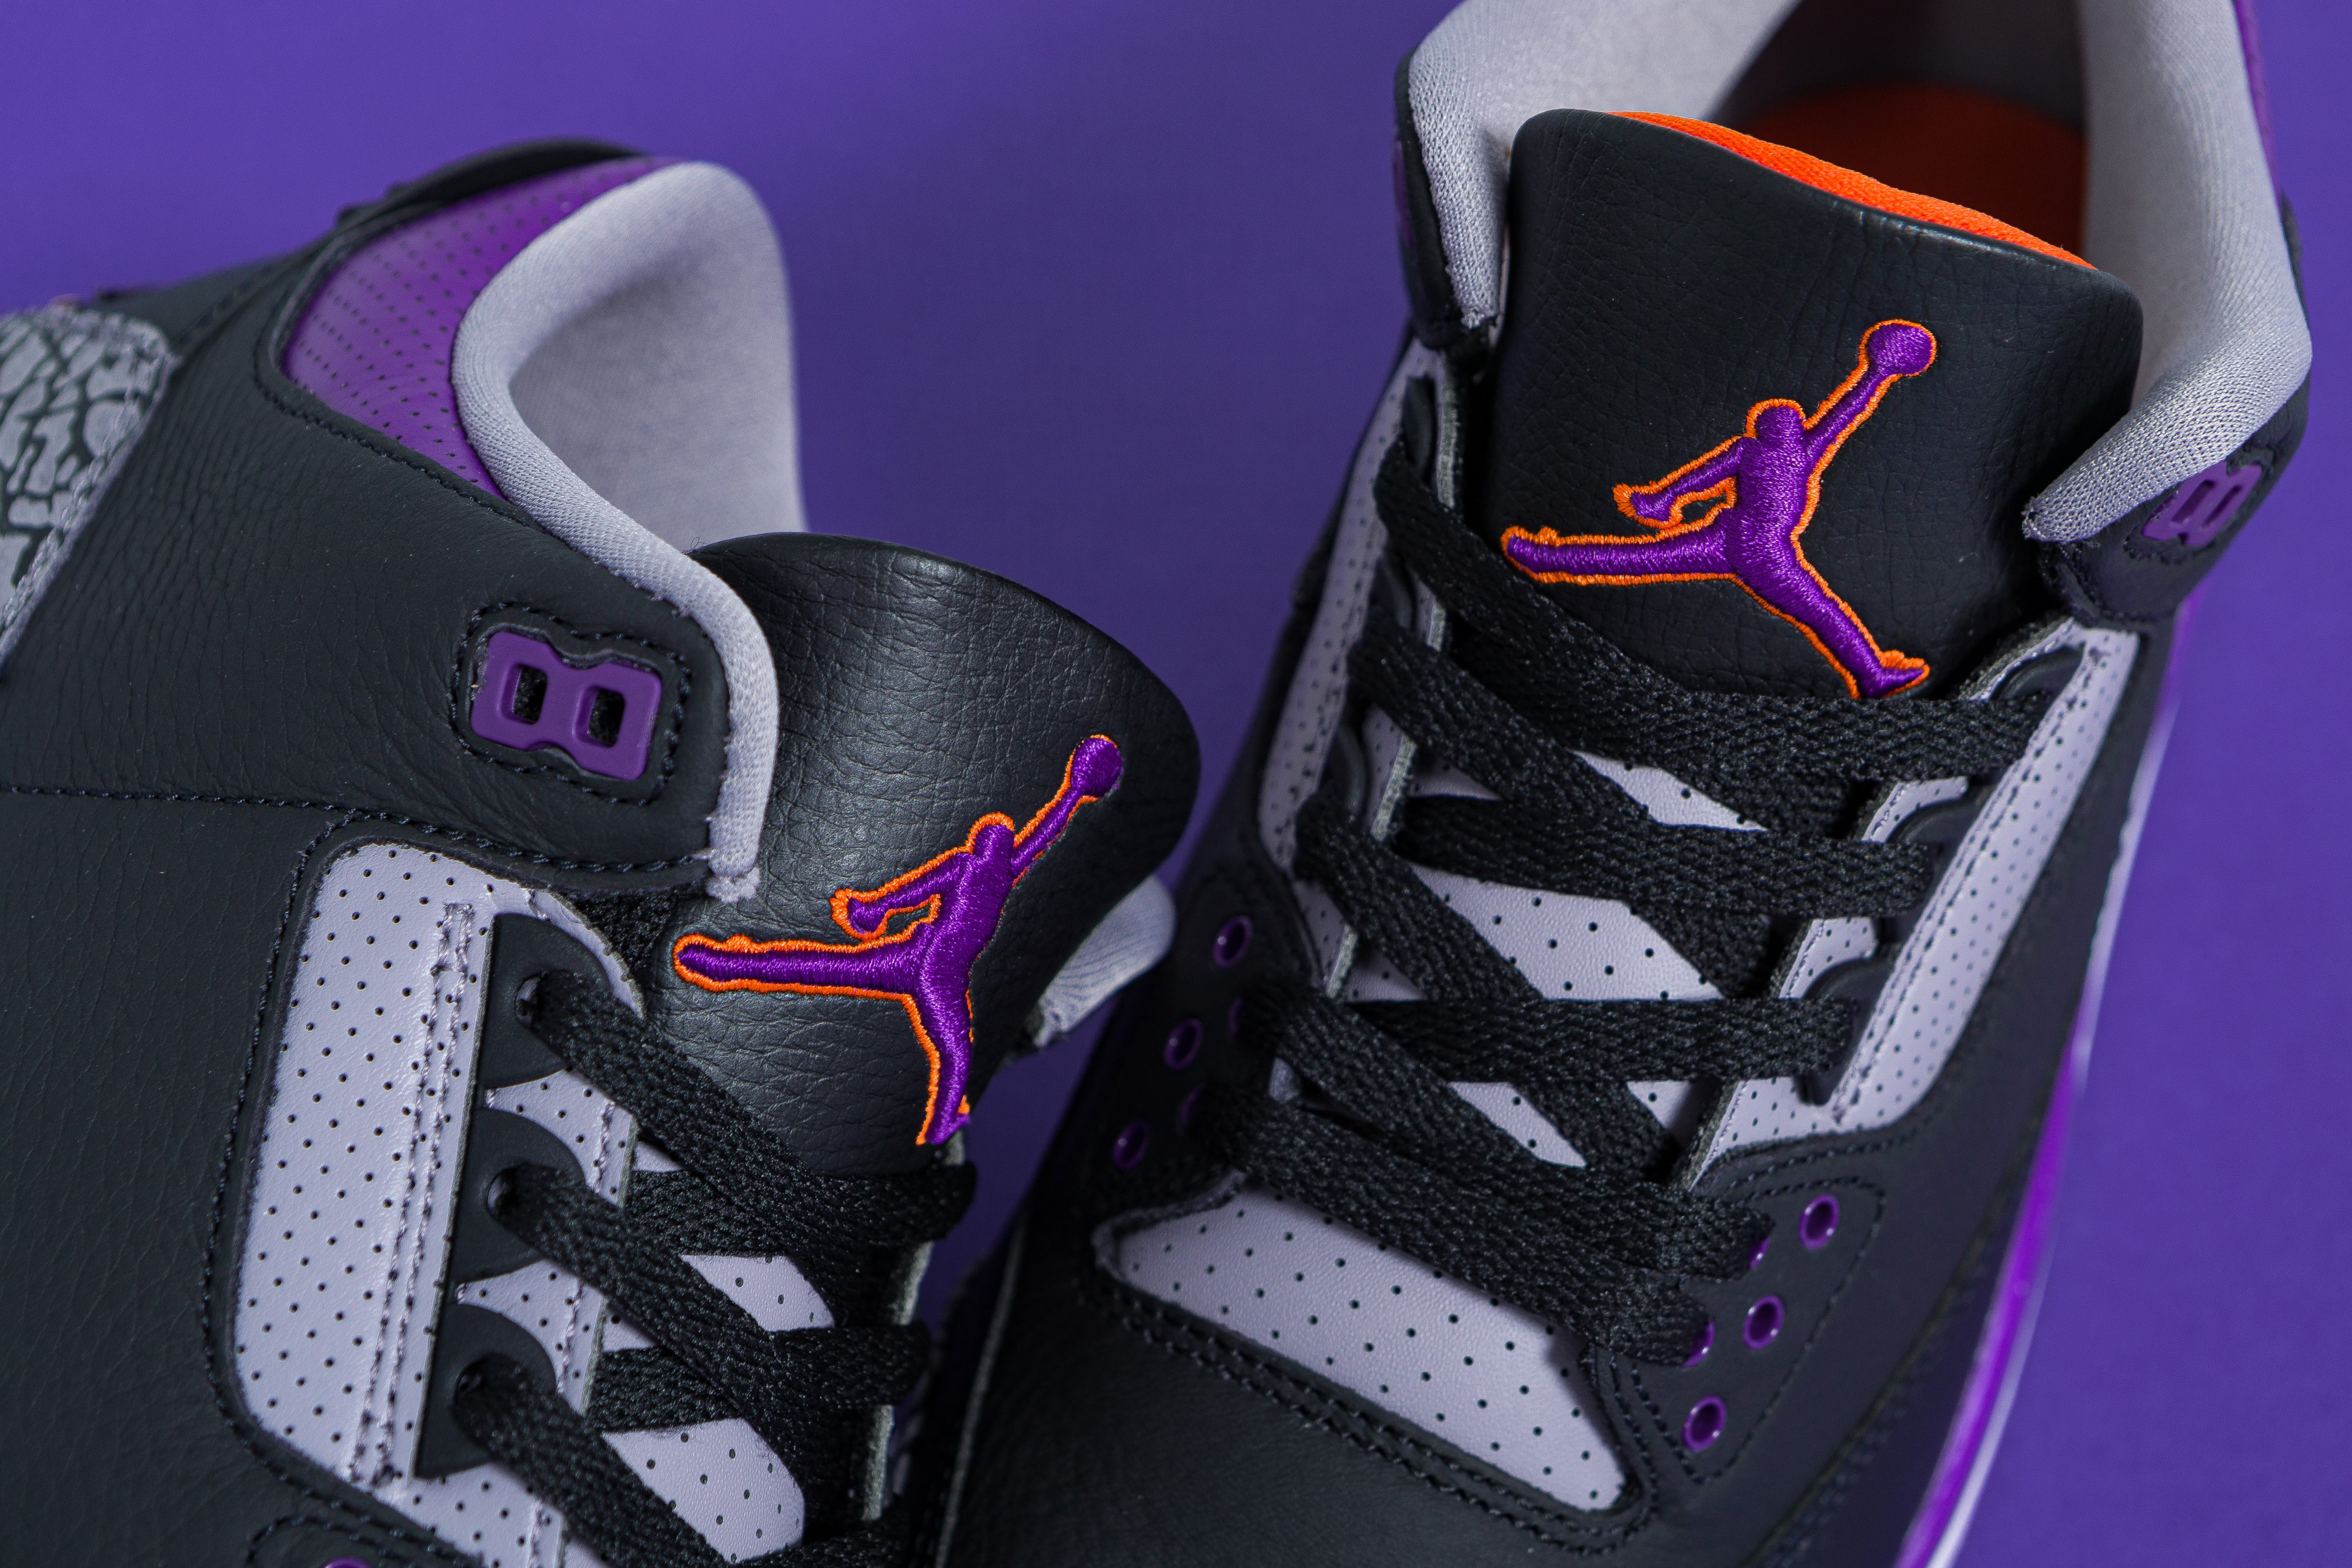 Jordan - Air Jordan 3 Retro - Black/Cement Grey-White-Court Purple - Up There